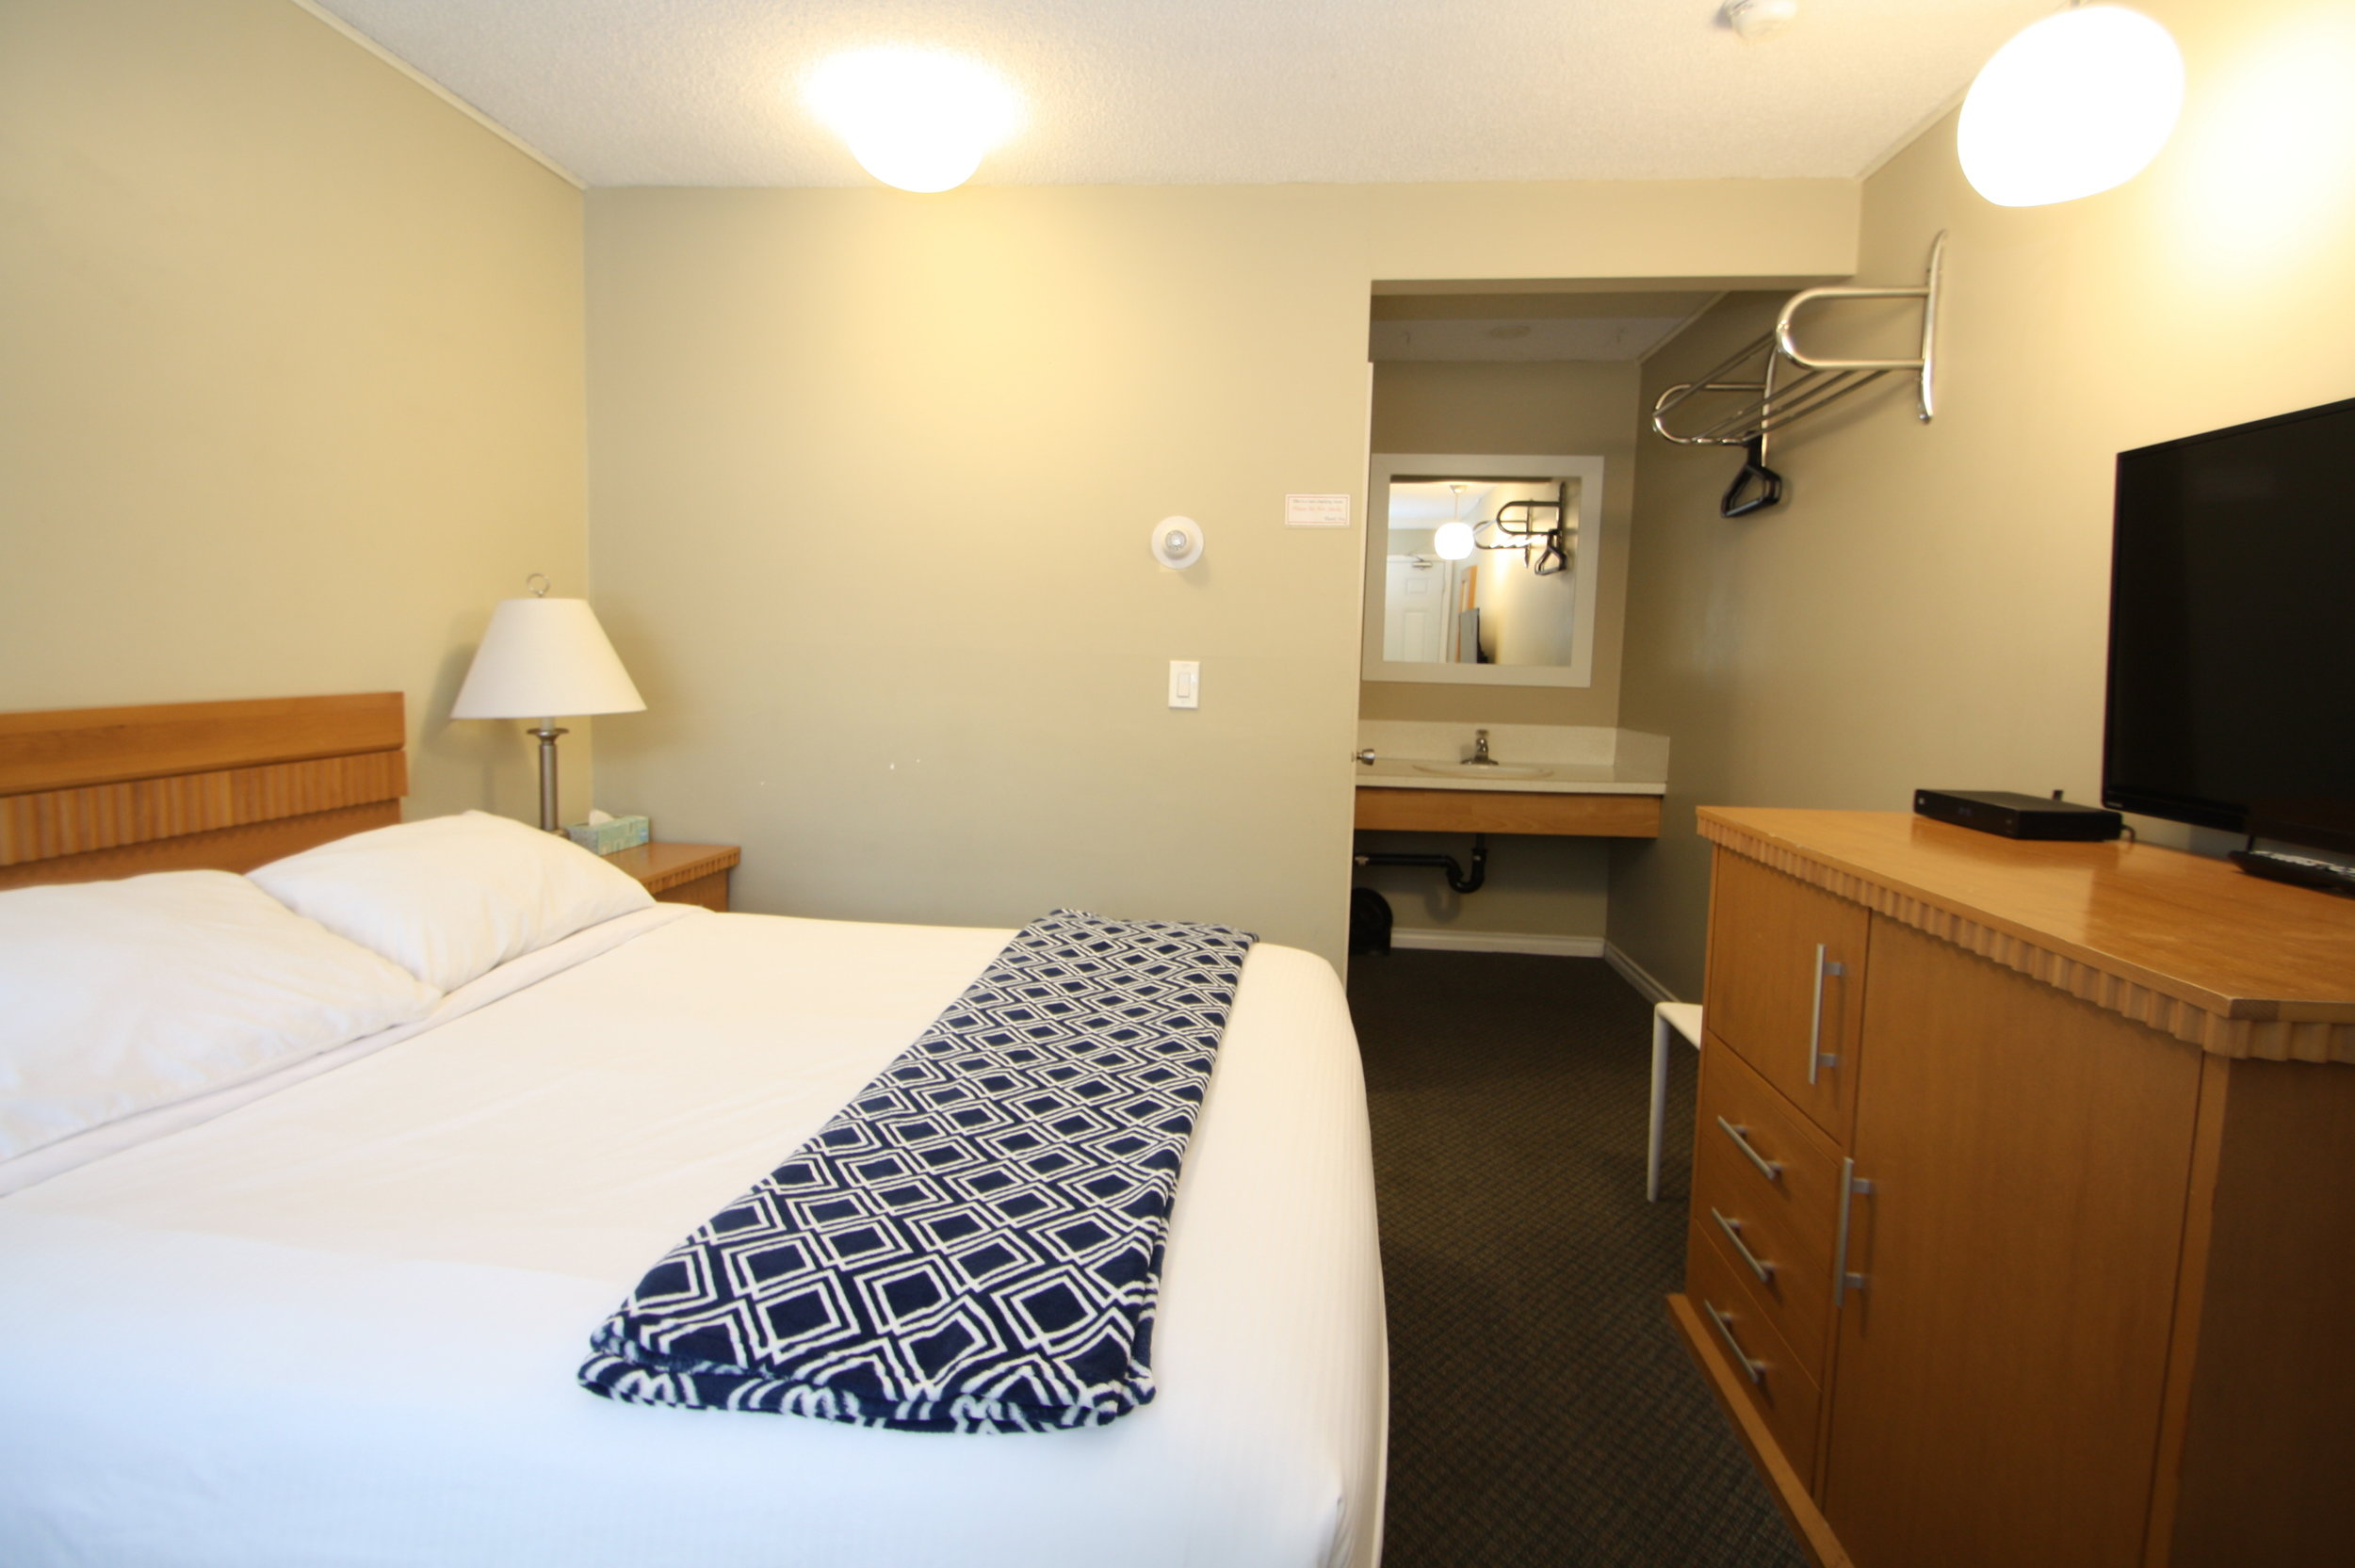 Maximum occupancy: 2 people  Our  standard room 1 queen bed  comes furnished with a desk, desk chair and additional seat.